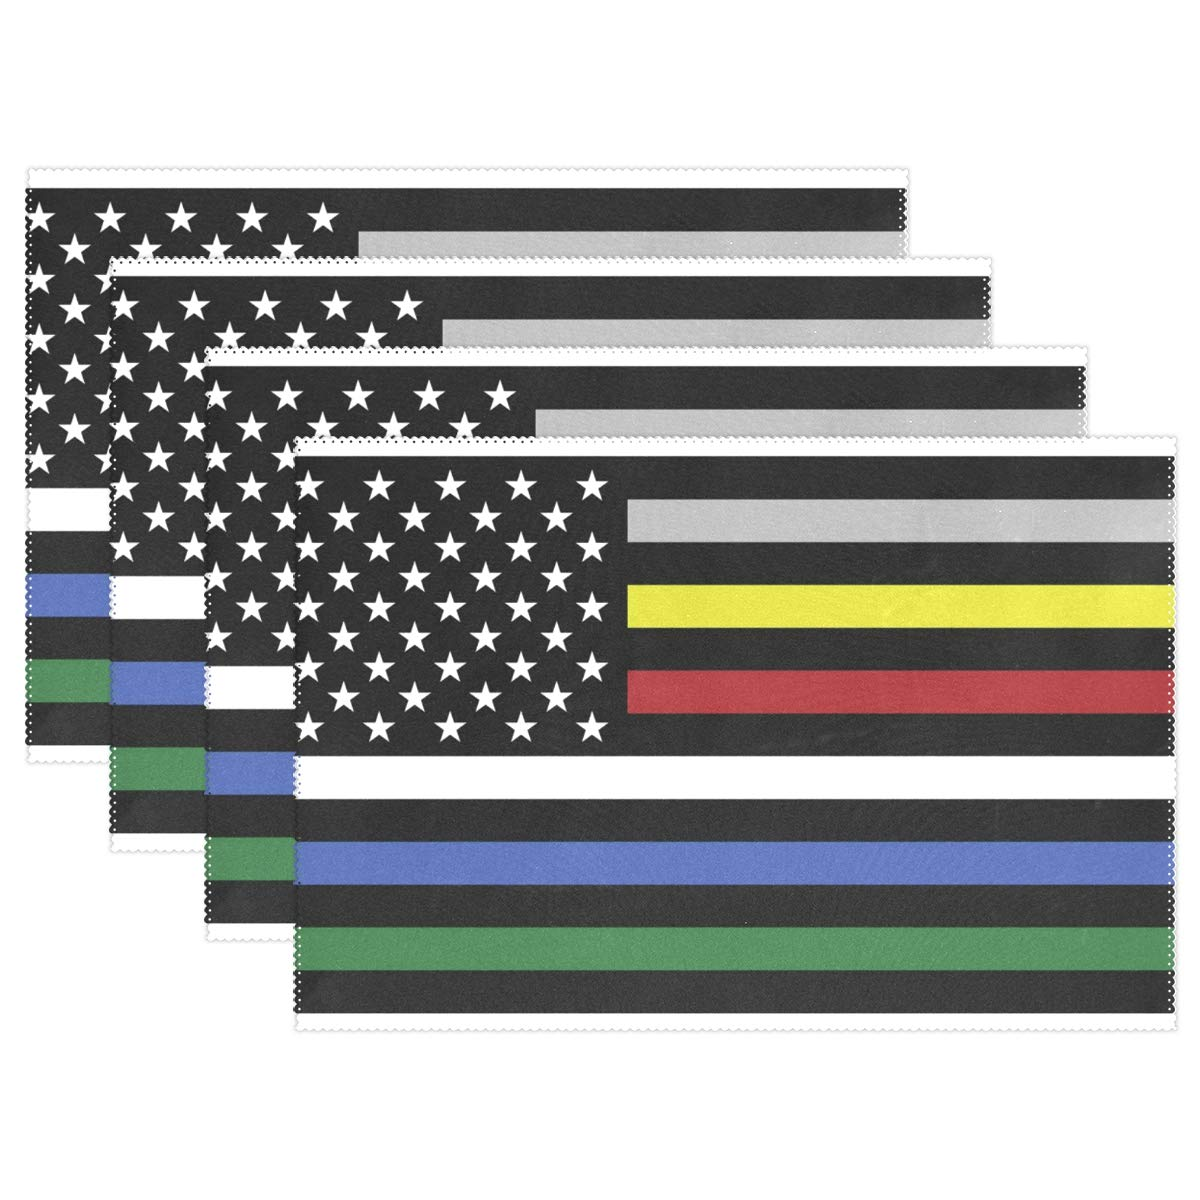 America Flag with Colored Lines Placemats Set of 4 for Kitchen Table Heat Resistant Washable Table Mats